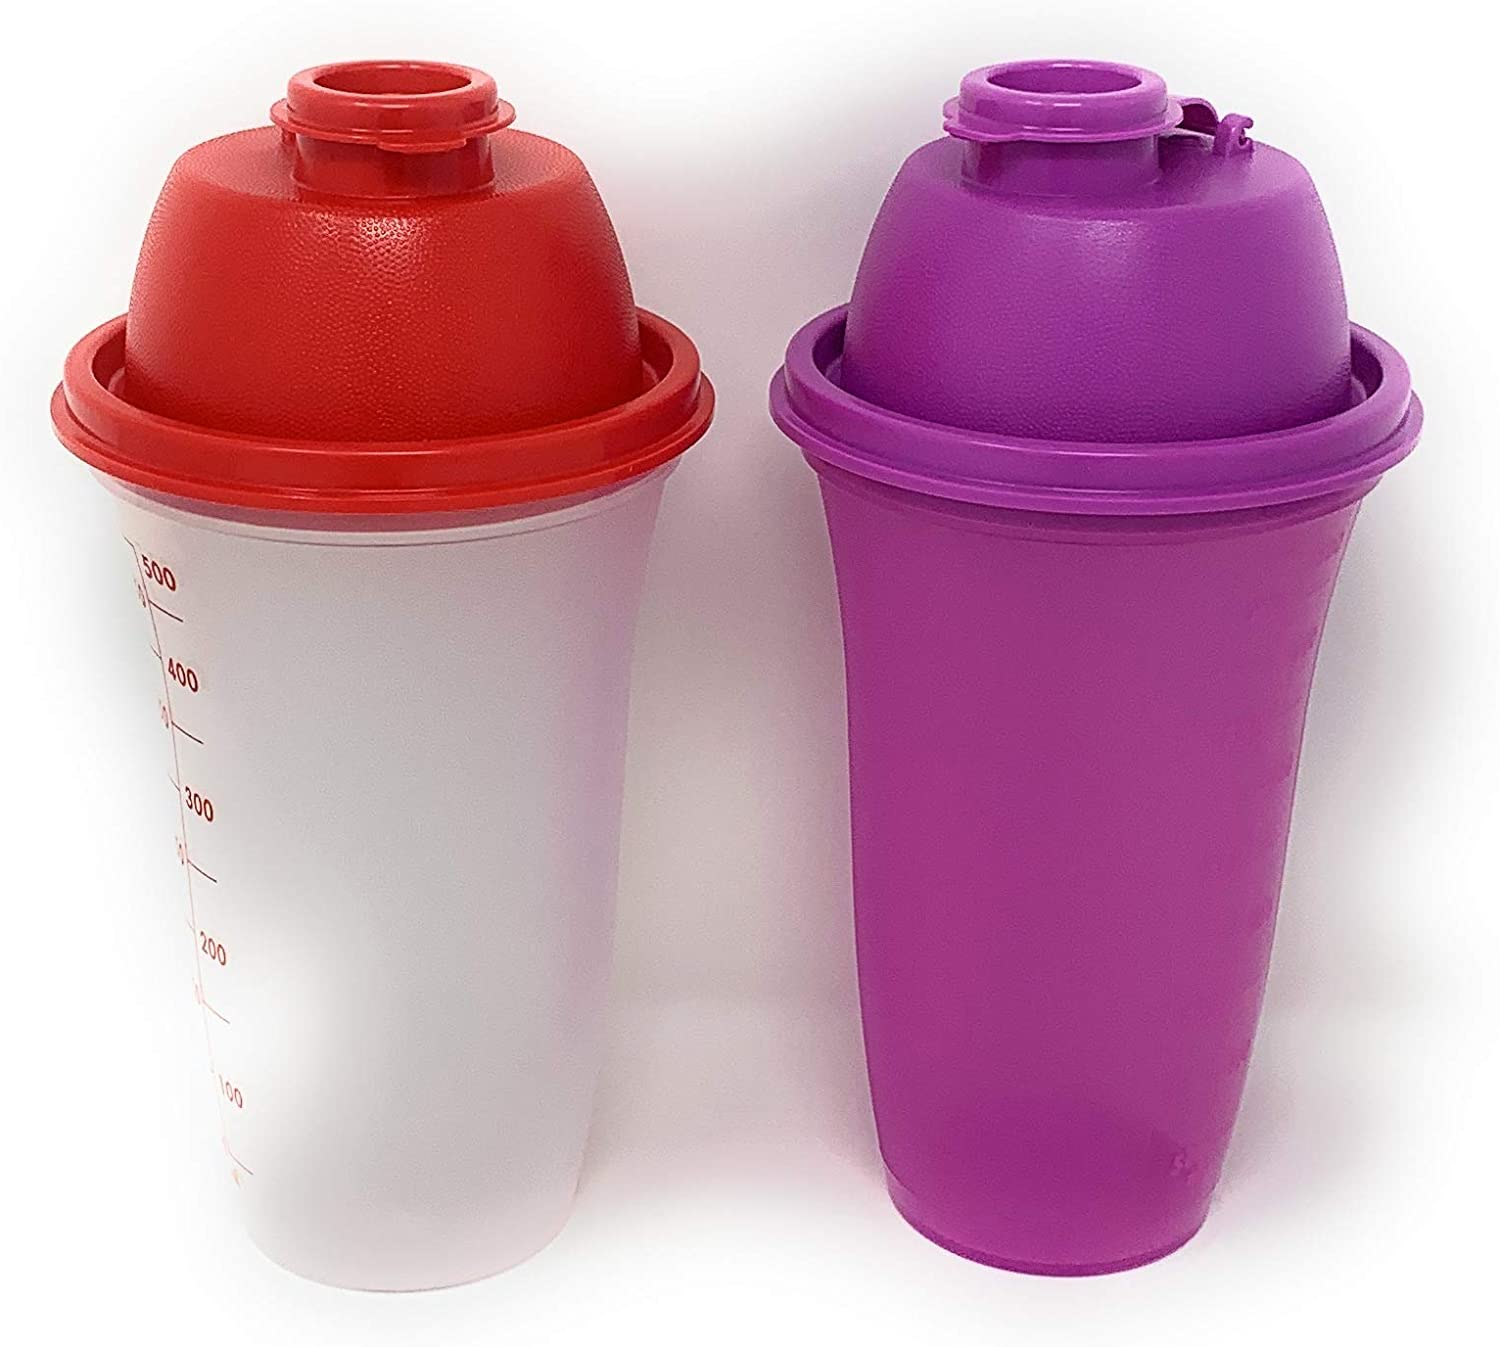 Tupperware Quick Shake Mixer Blender Set of 2